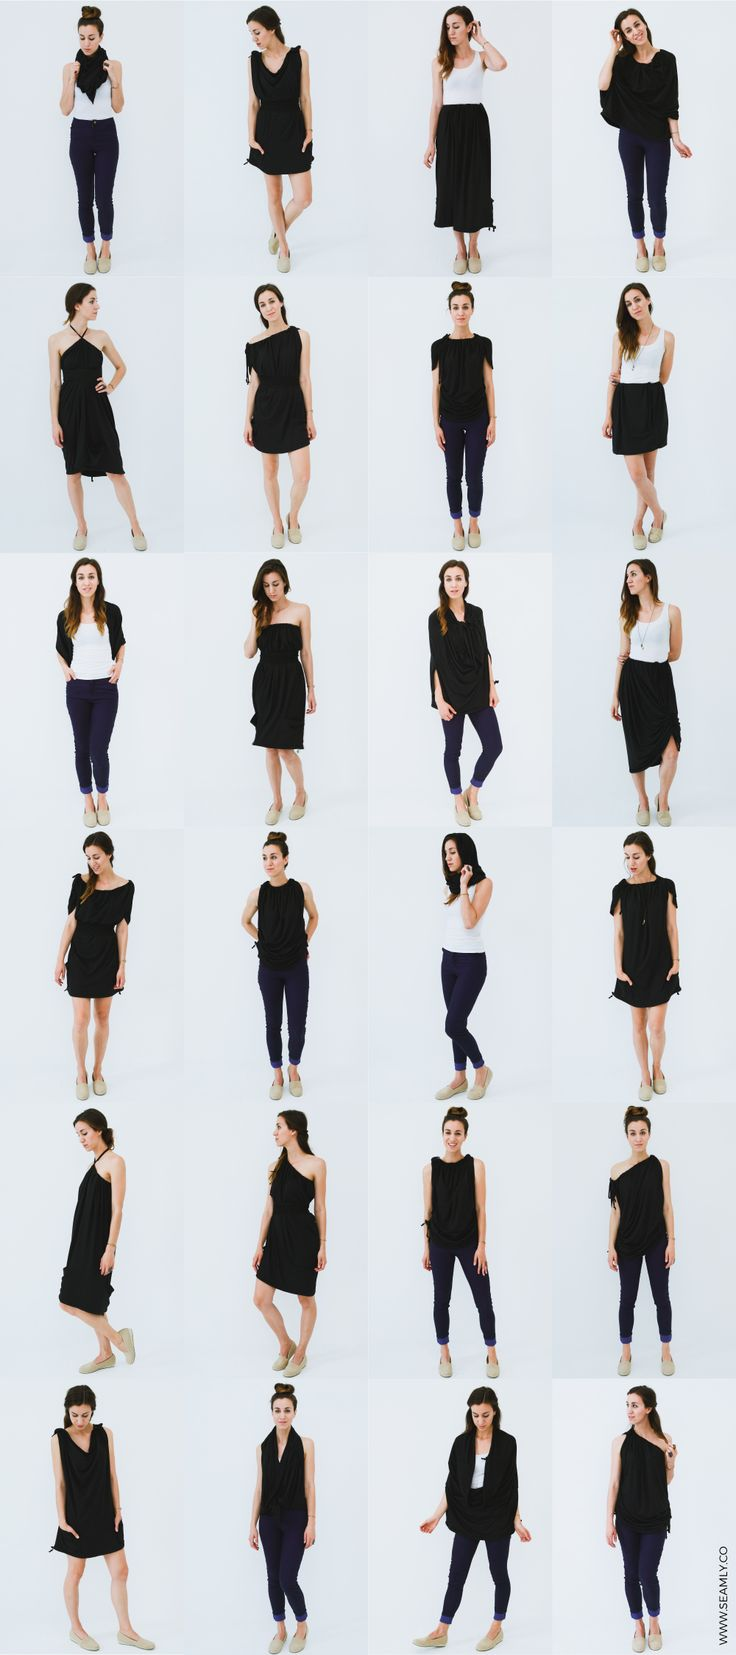 One garment, 30 ways to wear. The Versalette - versatile clothing, made in the USA. http://www.seamly.co/collections/all/products/versalette